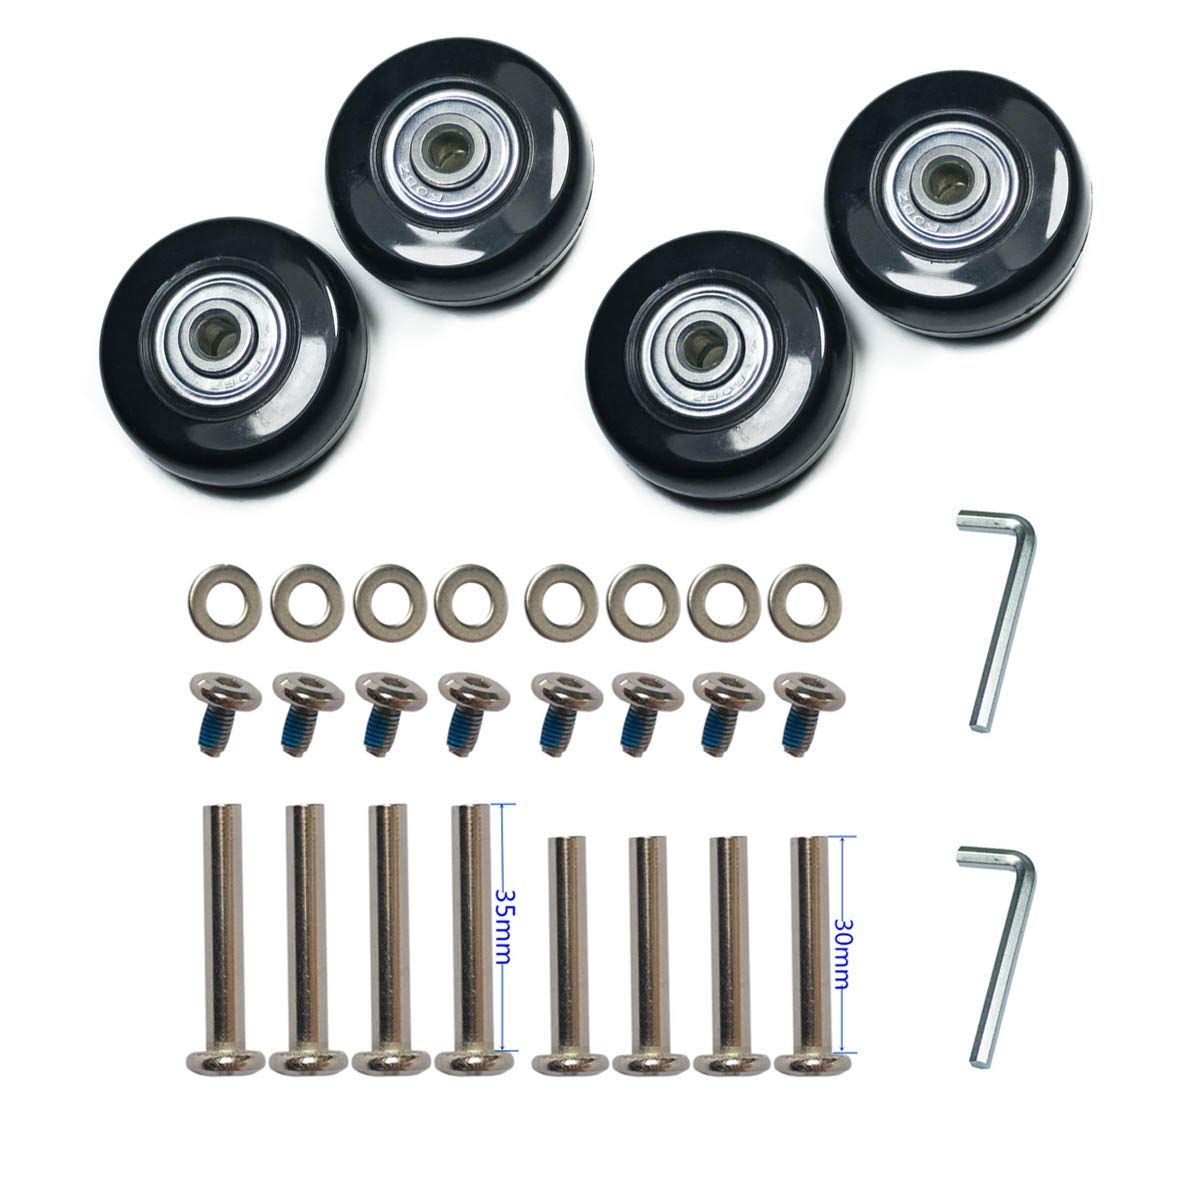 F-ber Wear-Resistant Luggage Suitcase Wheels Replacement Kit 50mm x 18mm Wheels ABEC 608zz Skate Inline Outdoor Replacement Wheels, One Set of (4) Wheels (OD:50 W:18 ID:6 Axles:30, Axles:35) by F-ber